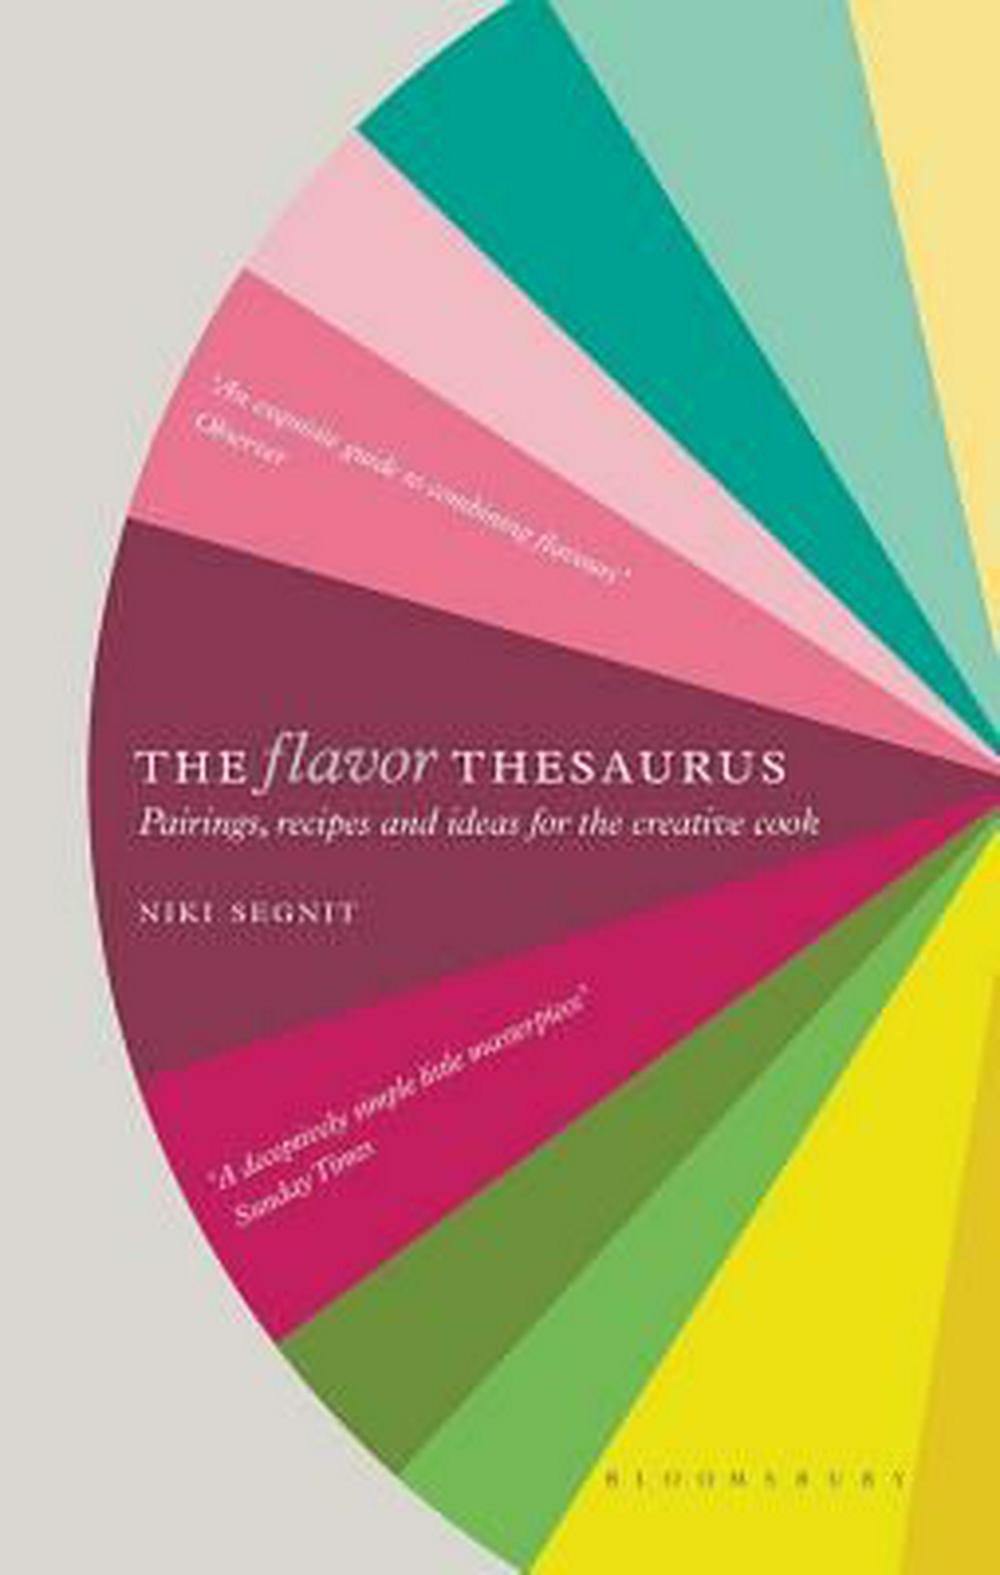 The Flavor Thesaurus by Niki Segnit, ISBN: 9781608198740